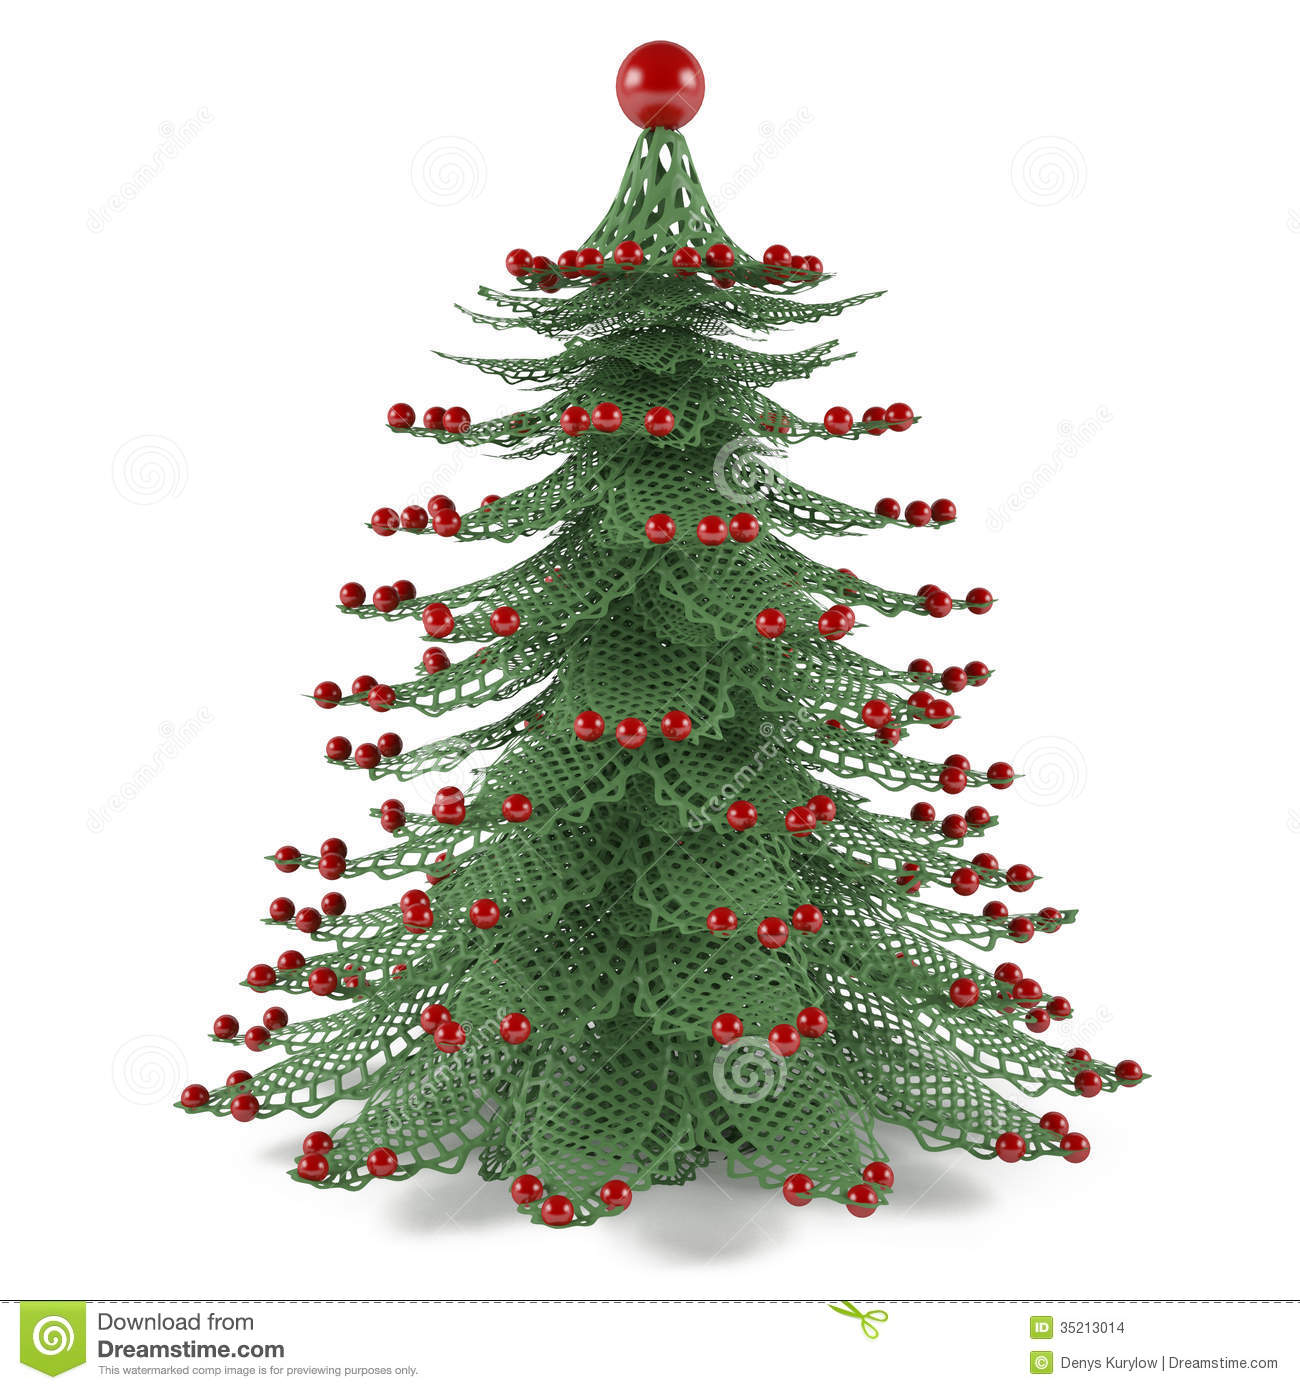 Christmas Tree With Toys : Decorative christmas tree toy stock illustration image